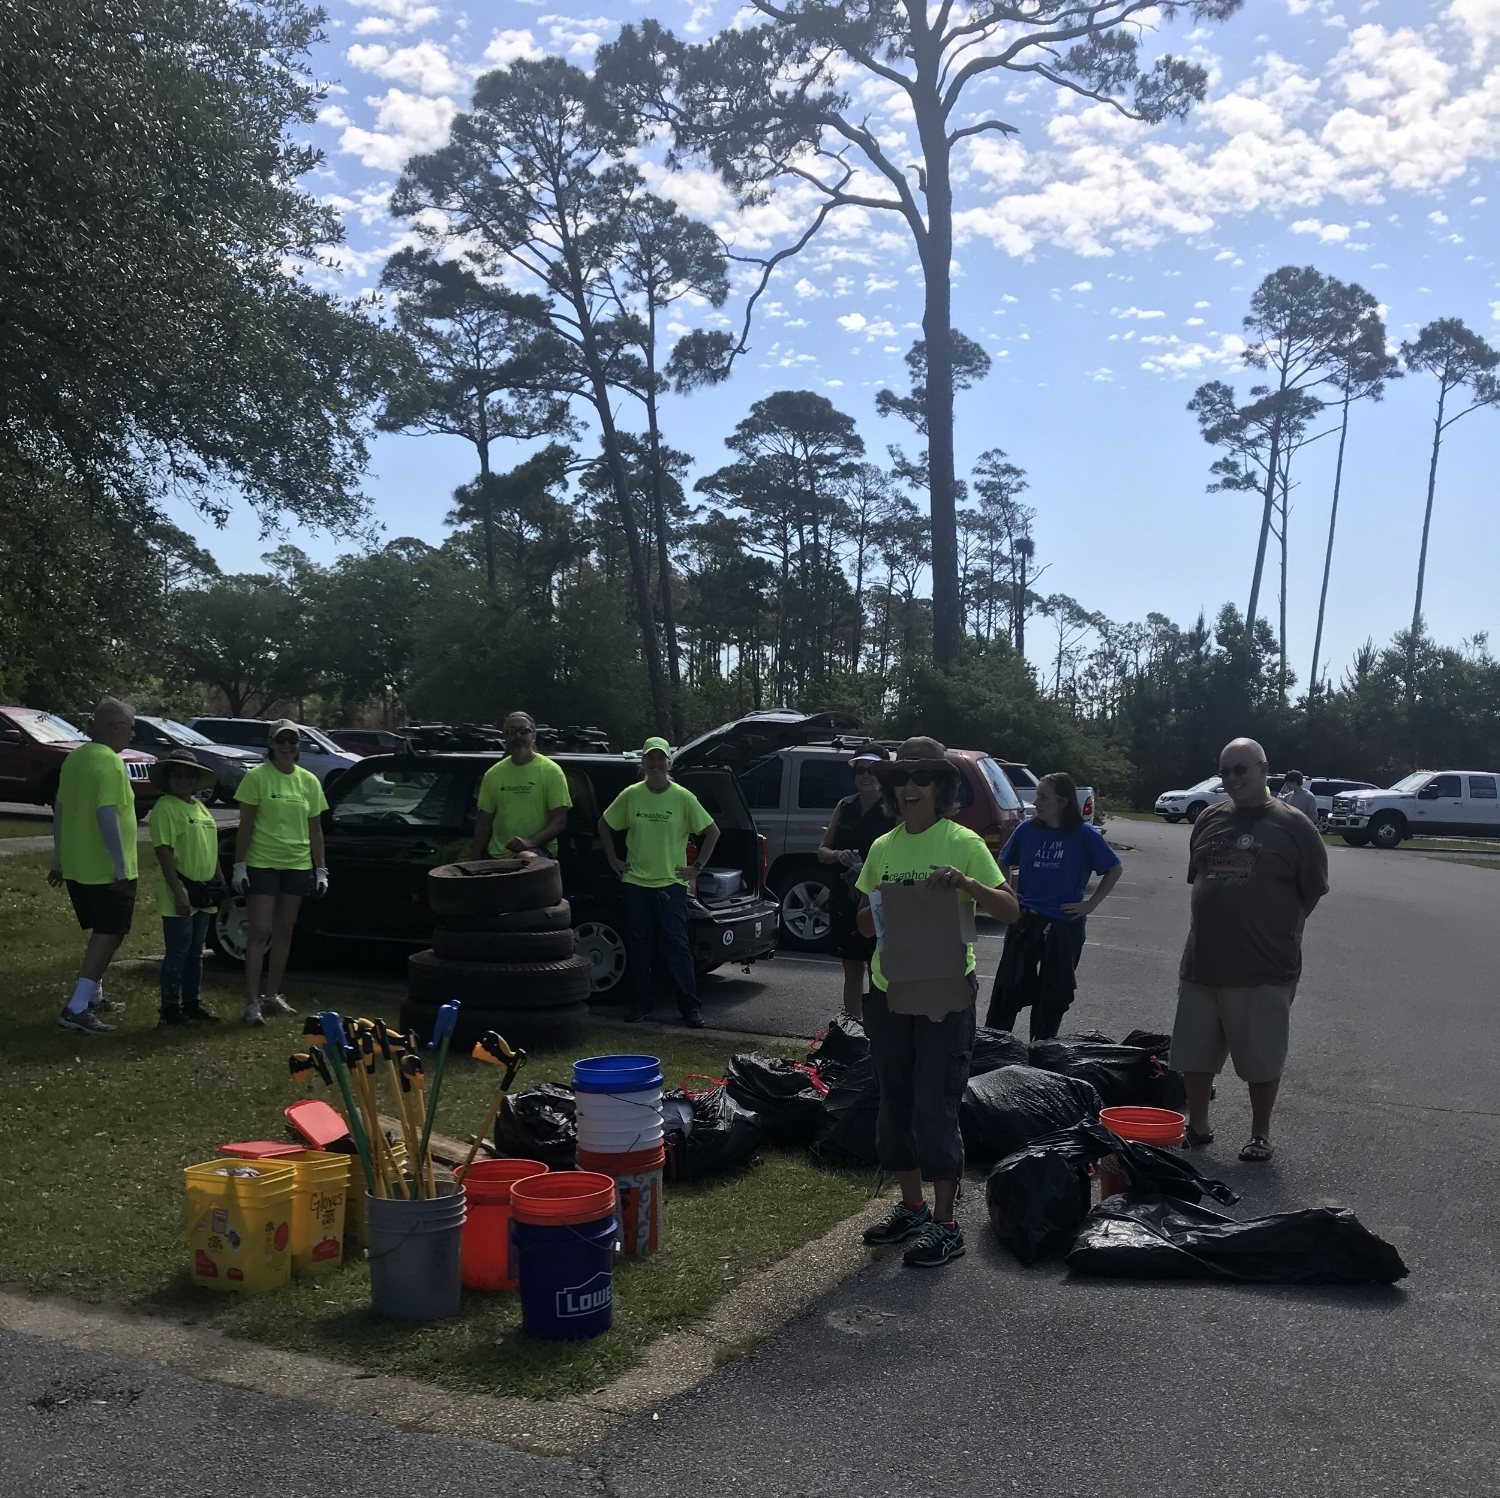 - An intrepid volunteer (Andy) collected 170 lbs of debris at Bay Bluffs earlier in the week. Coupled with the 453 lbs from the 5th makes May the fifth month in a row of higher volumes versus 2017